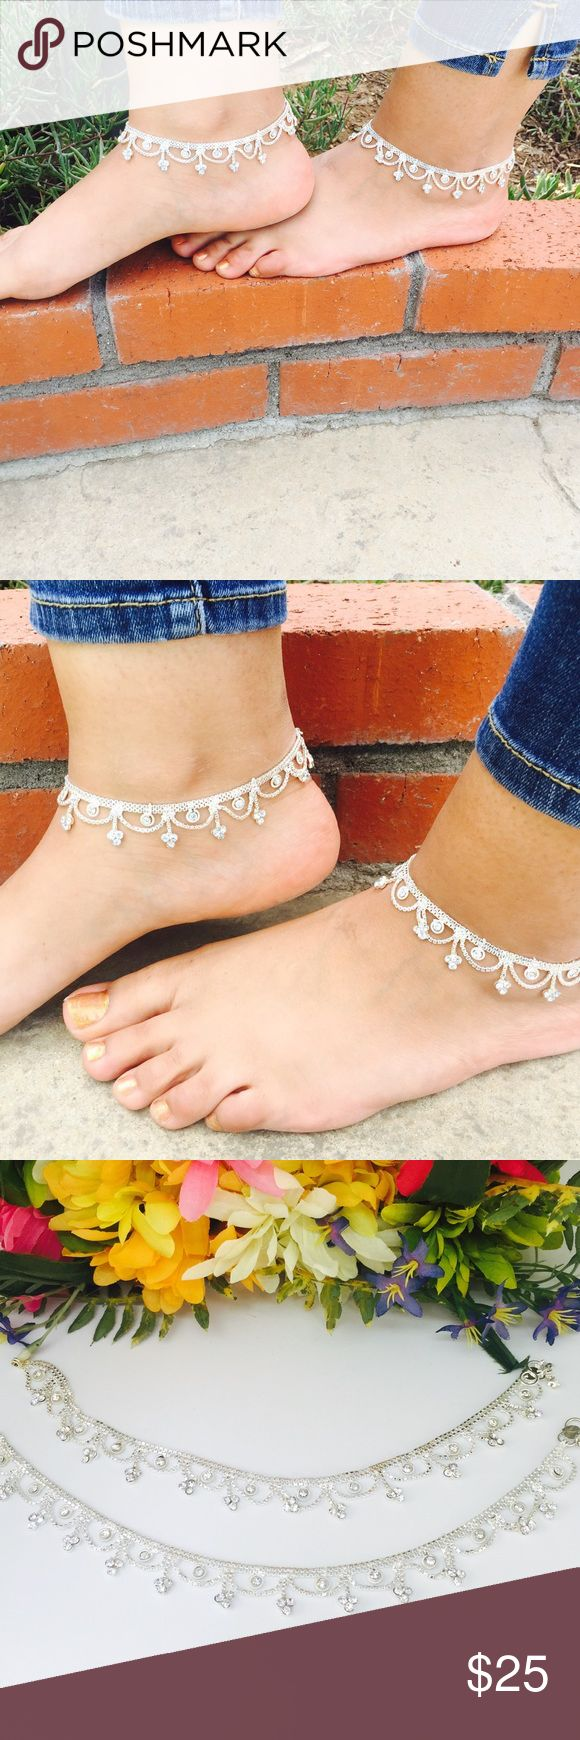 Silver anklet with rhinestones Beautiful silver anklet with rhinestones. Perfect for a day at the beach. Looks gorgeous with heels on a night out. Tags: anklet silver Indian Pakistani jewelry boho bohemian beach wedding formal Bollywood Jewelry